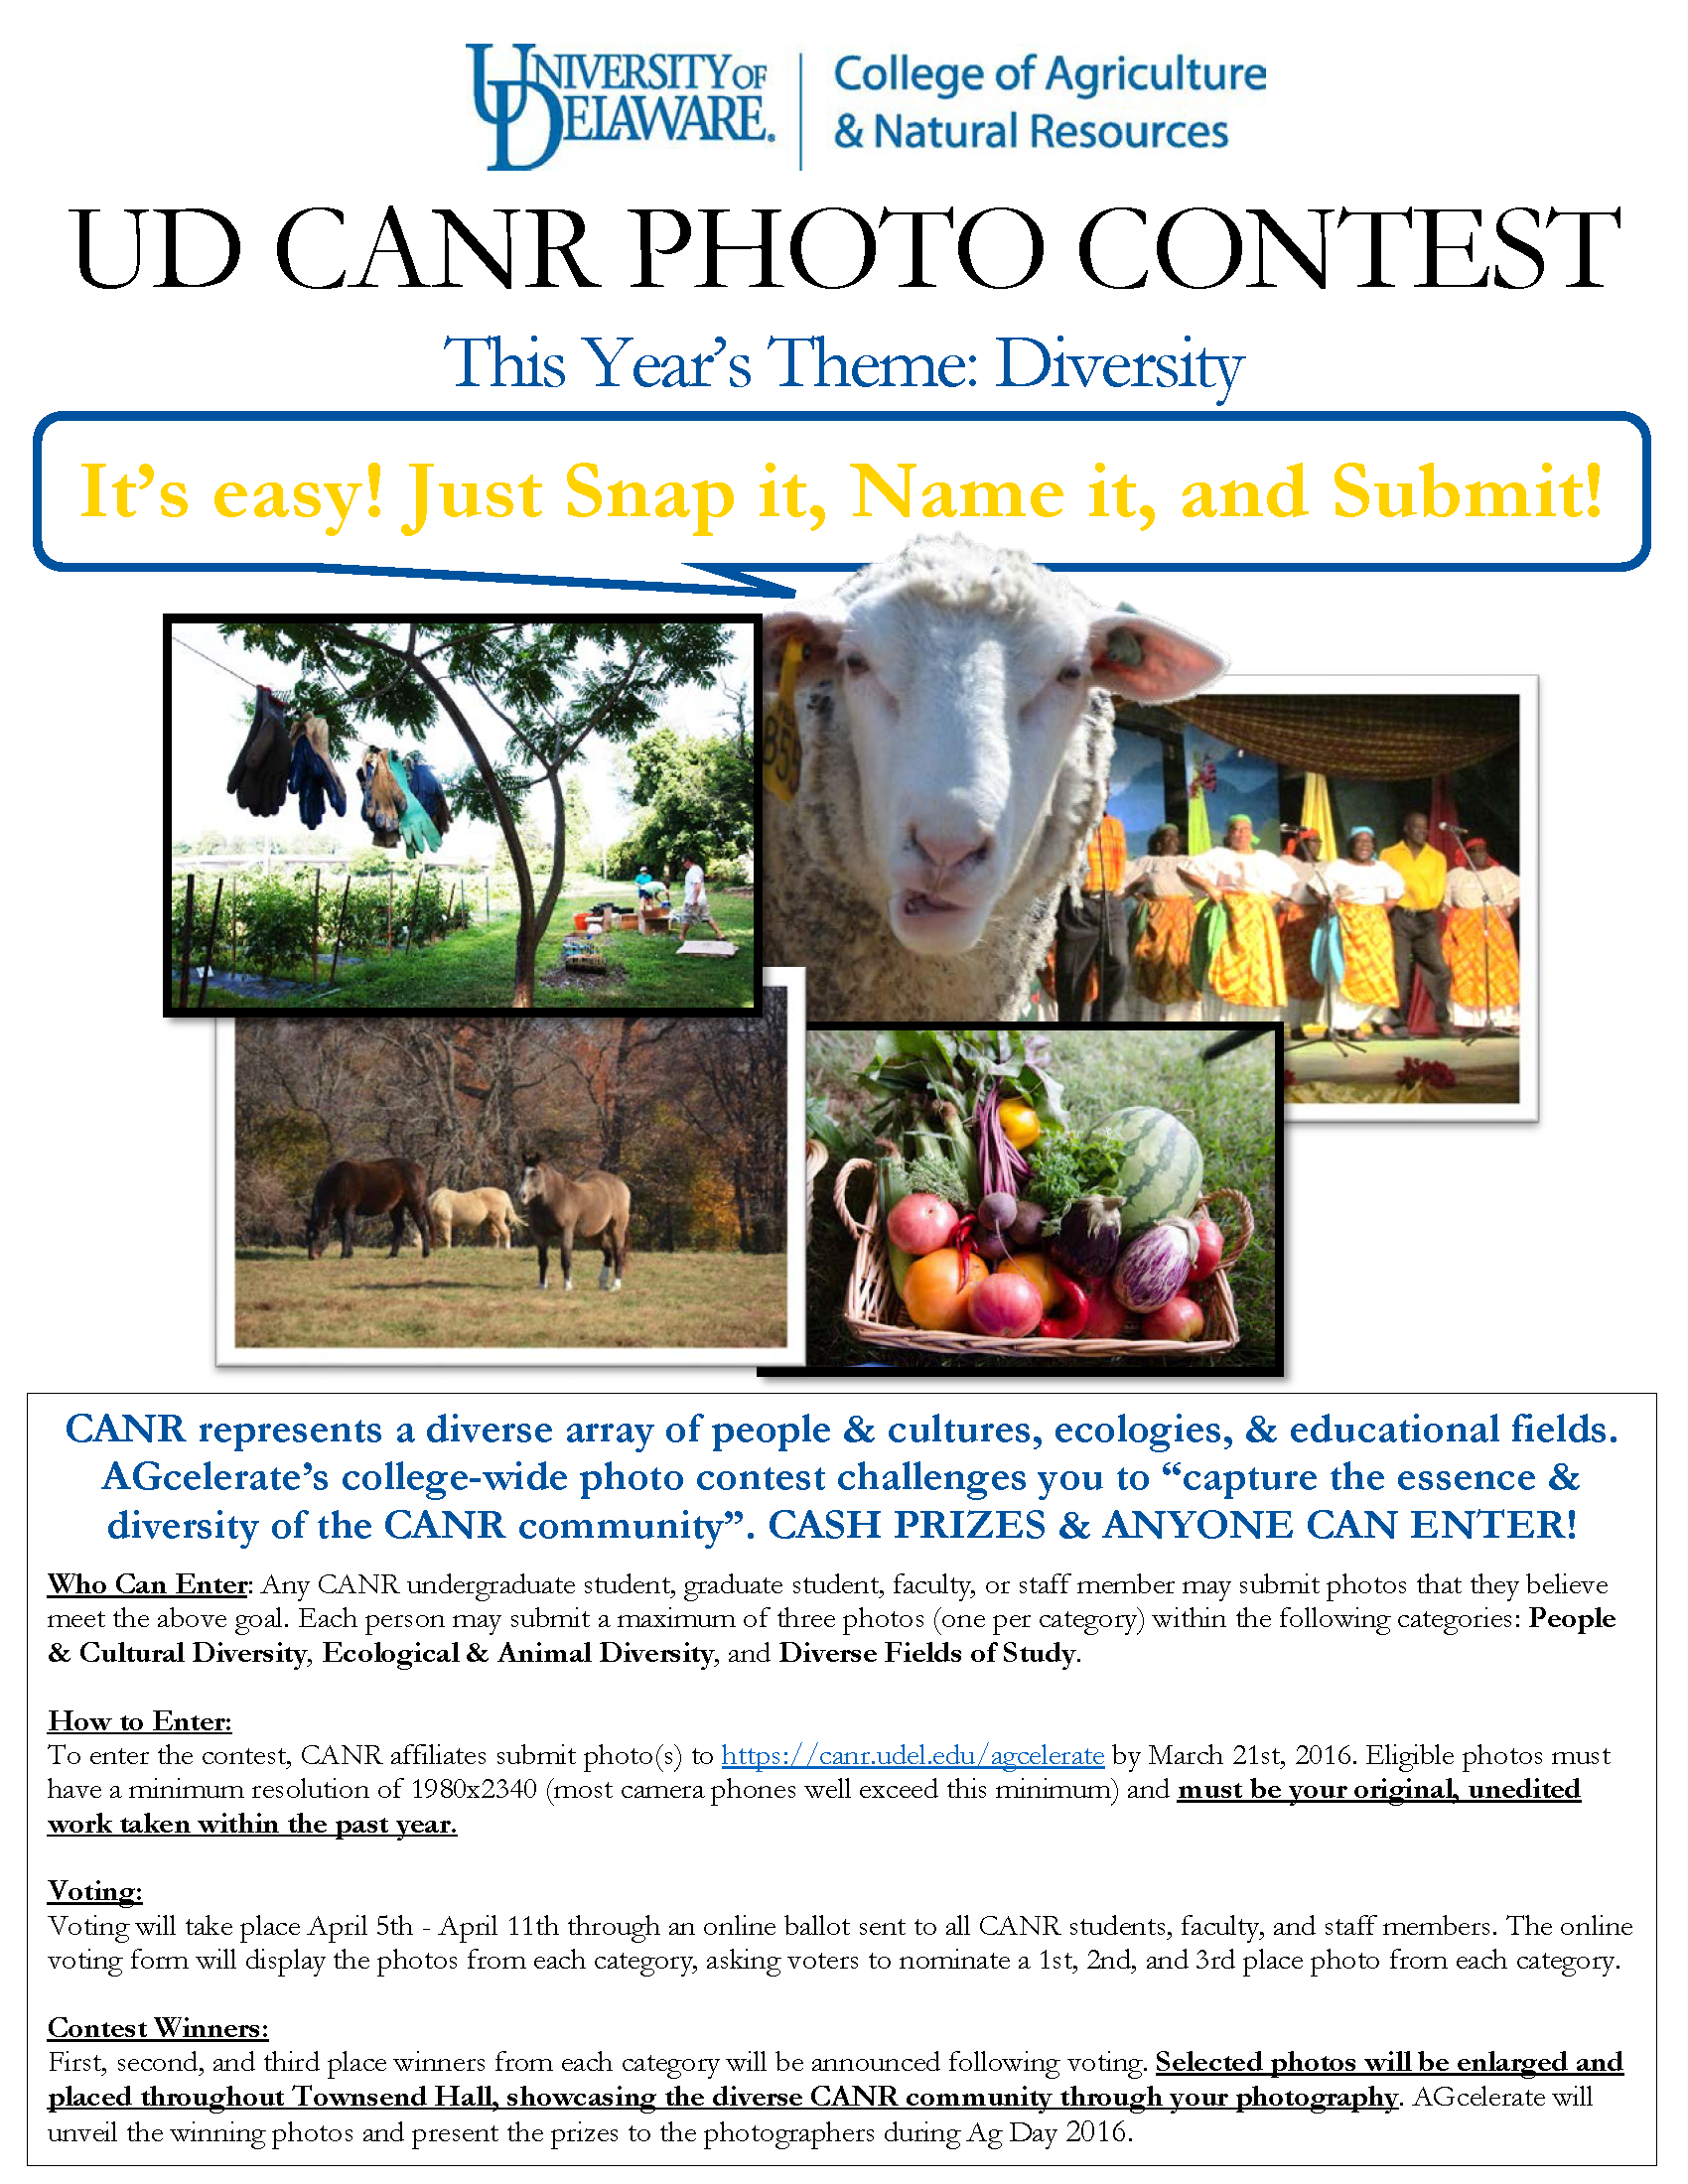 photo contest flyerpdf